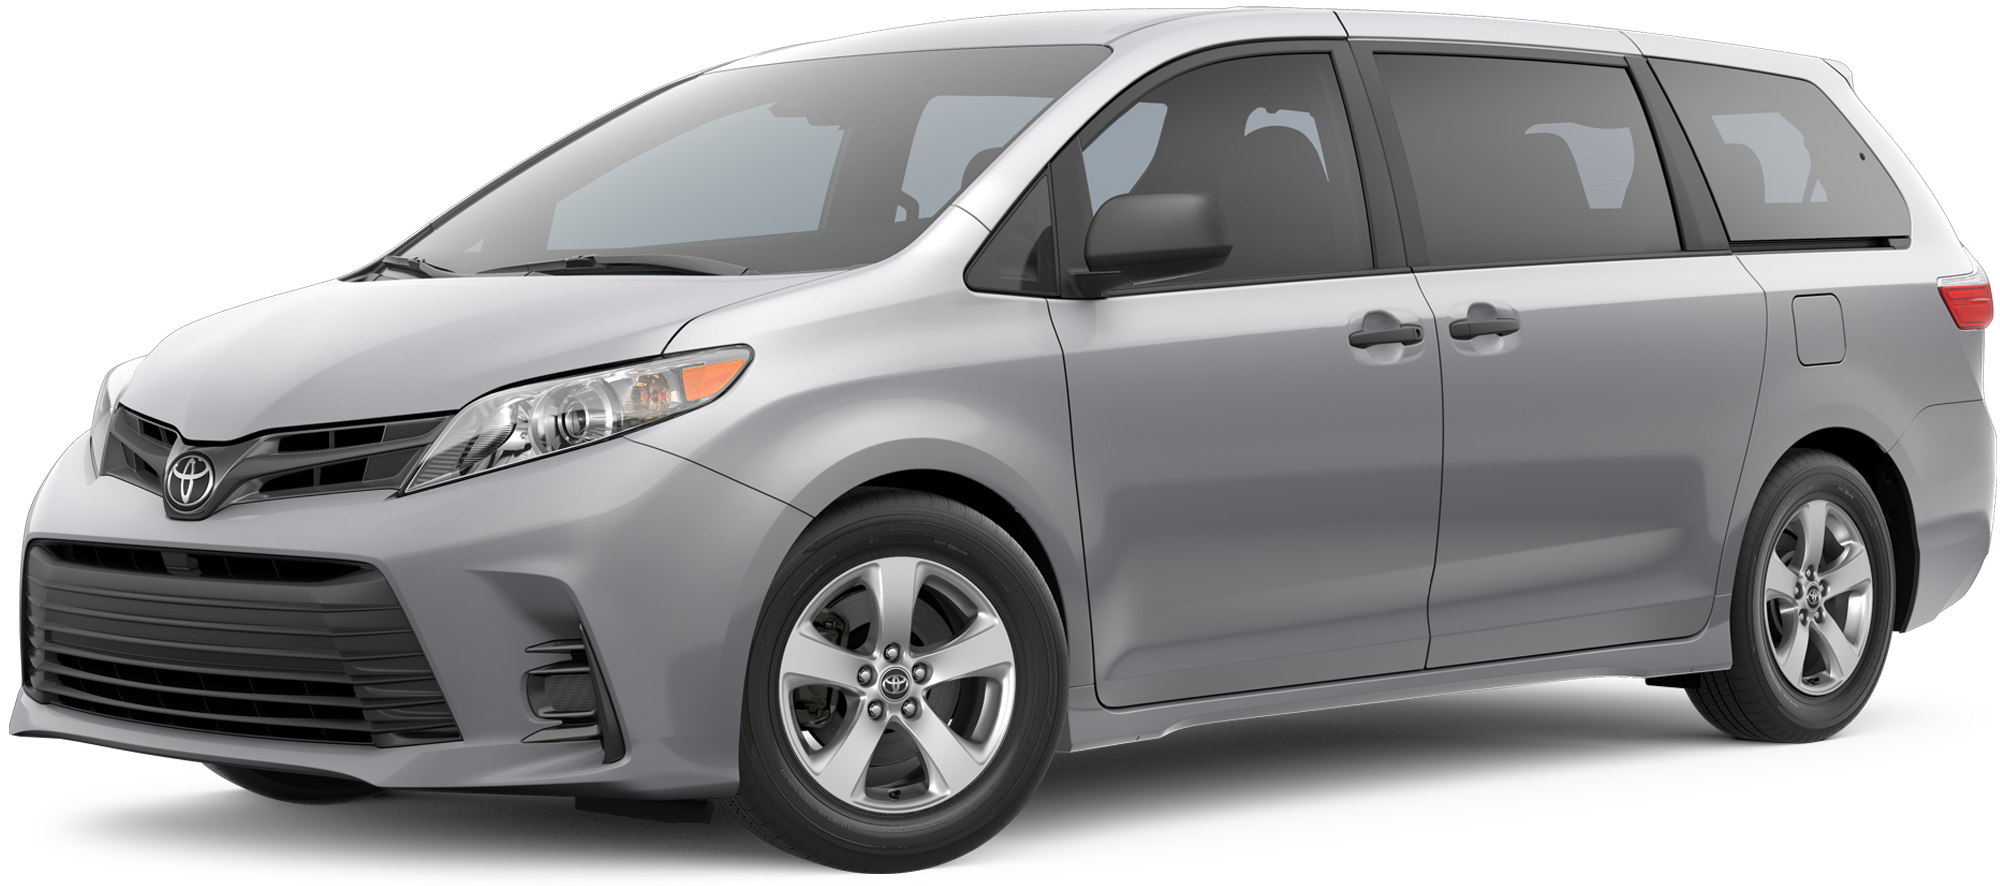 Fred Anderson Toyota Raleigh Nc >> 2019 Toyota Sienna Specials & Offers in Raleigh NC